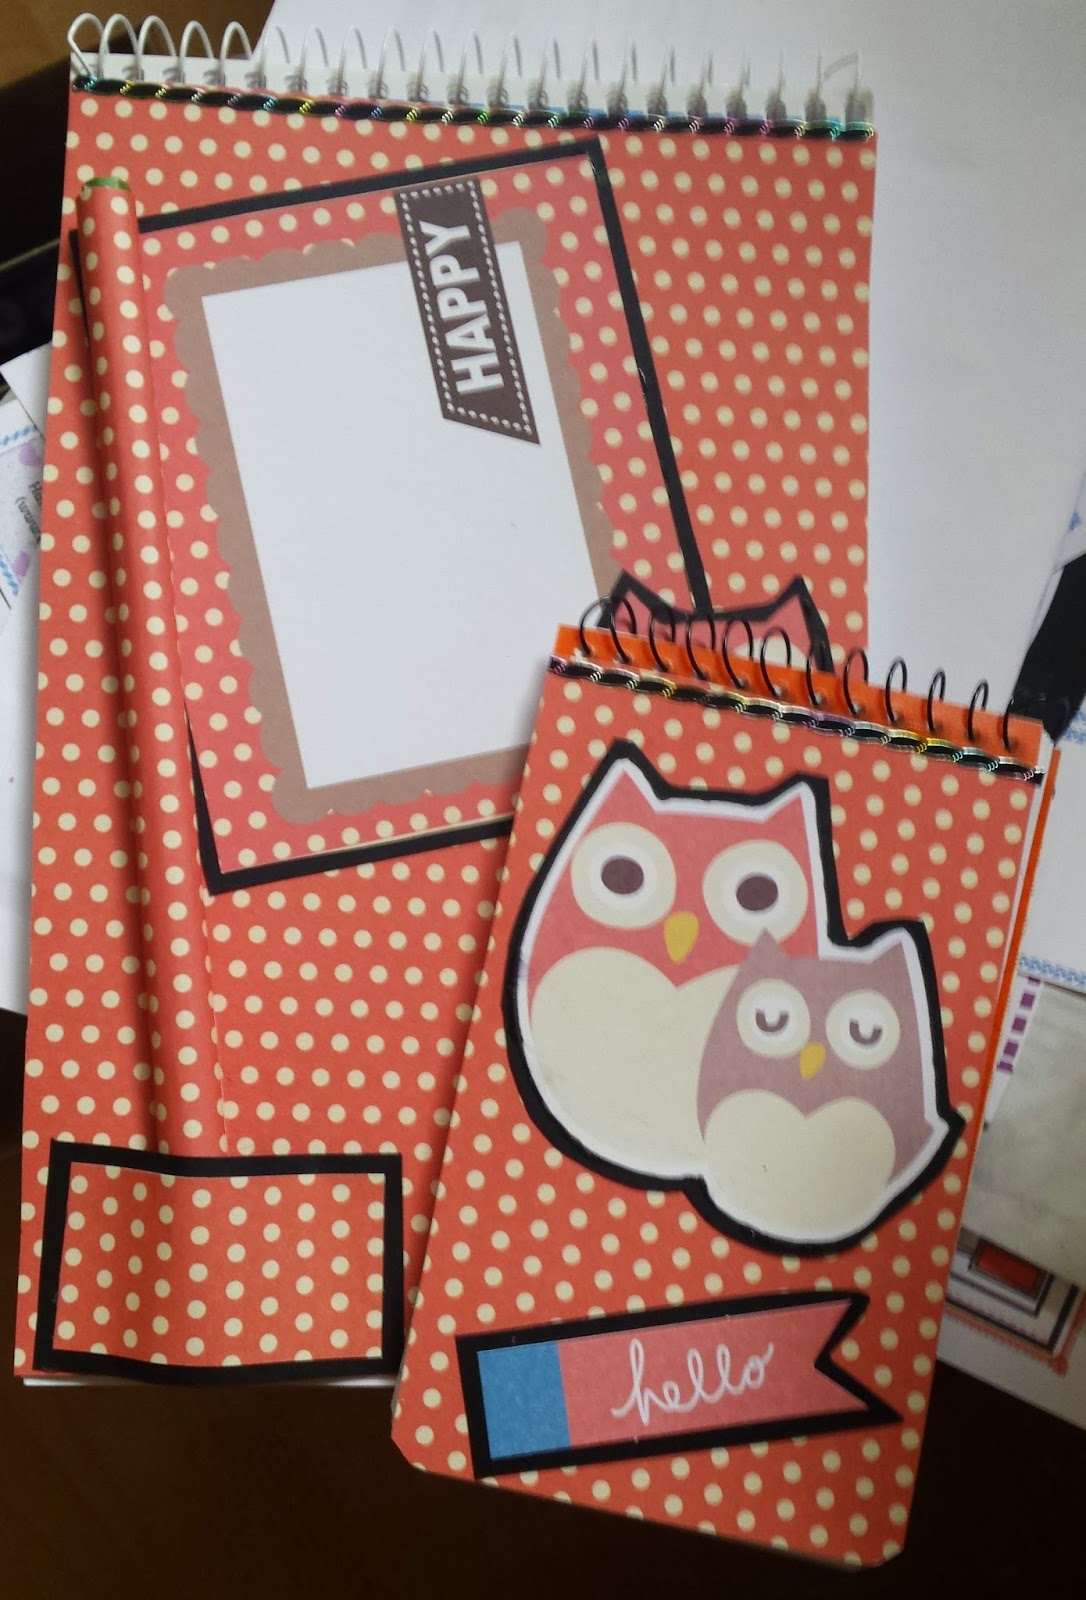 Owl stationery gift set